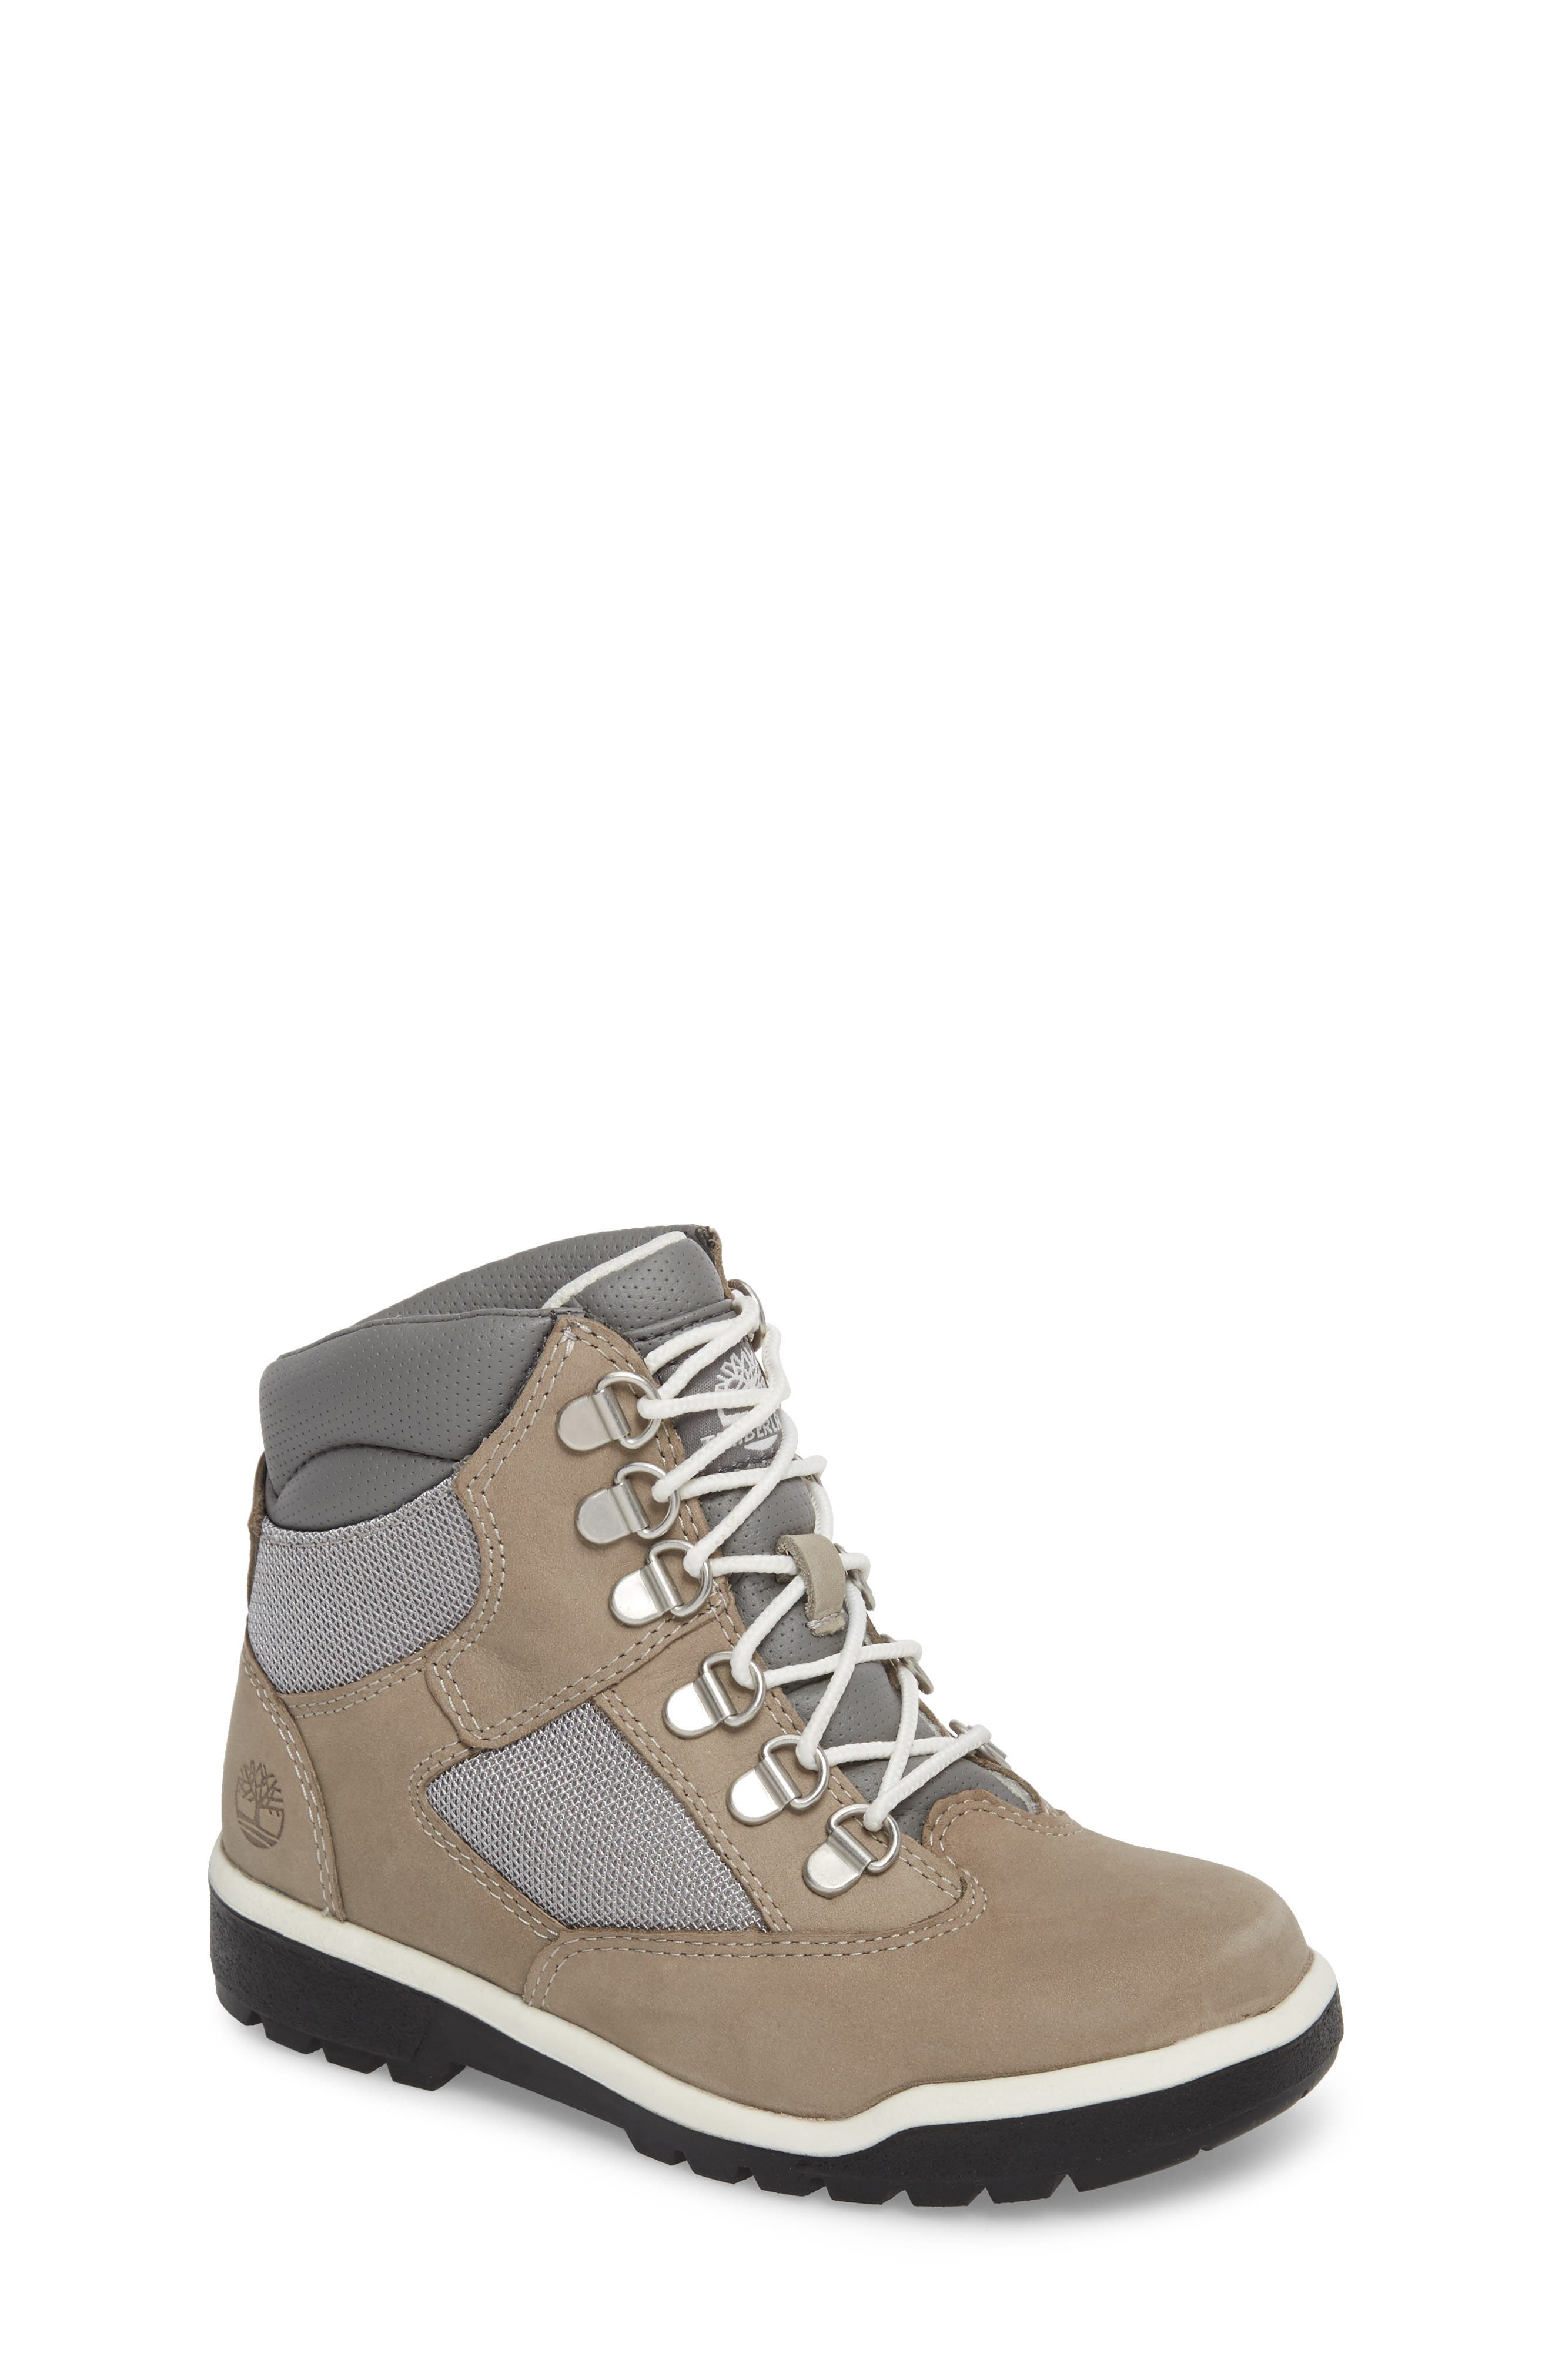 Alternate Image 1 Selected - Timberland Water-Resistant 6-Inch Field Boot (Toddler, Little Kid & Big Kid)